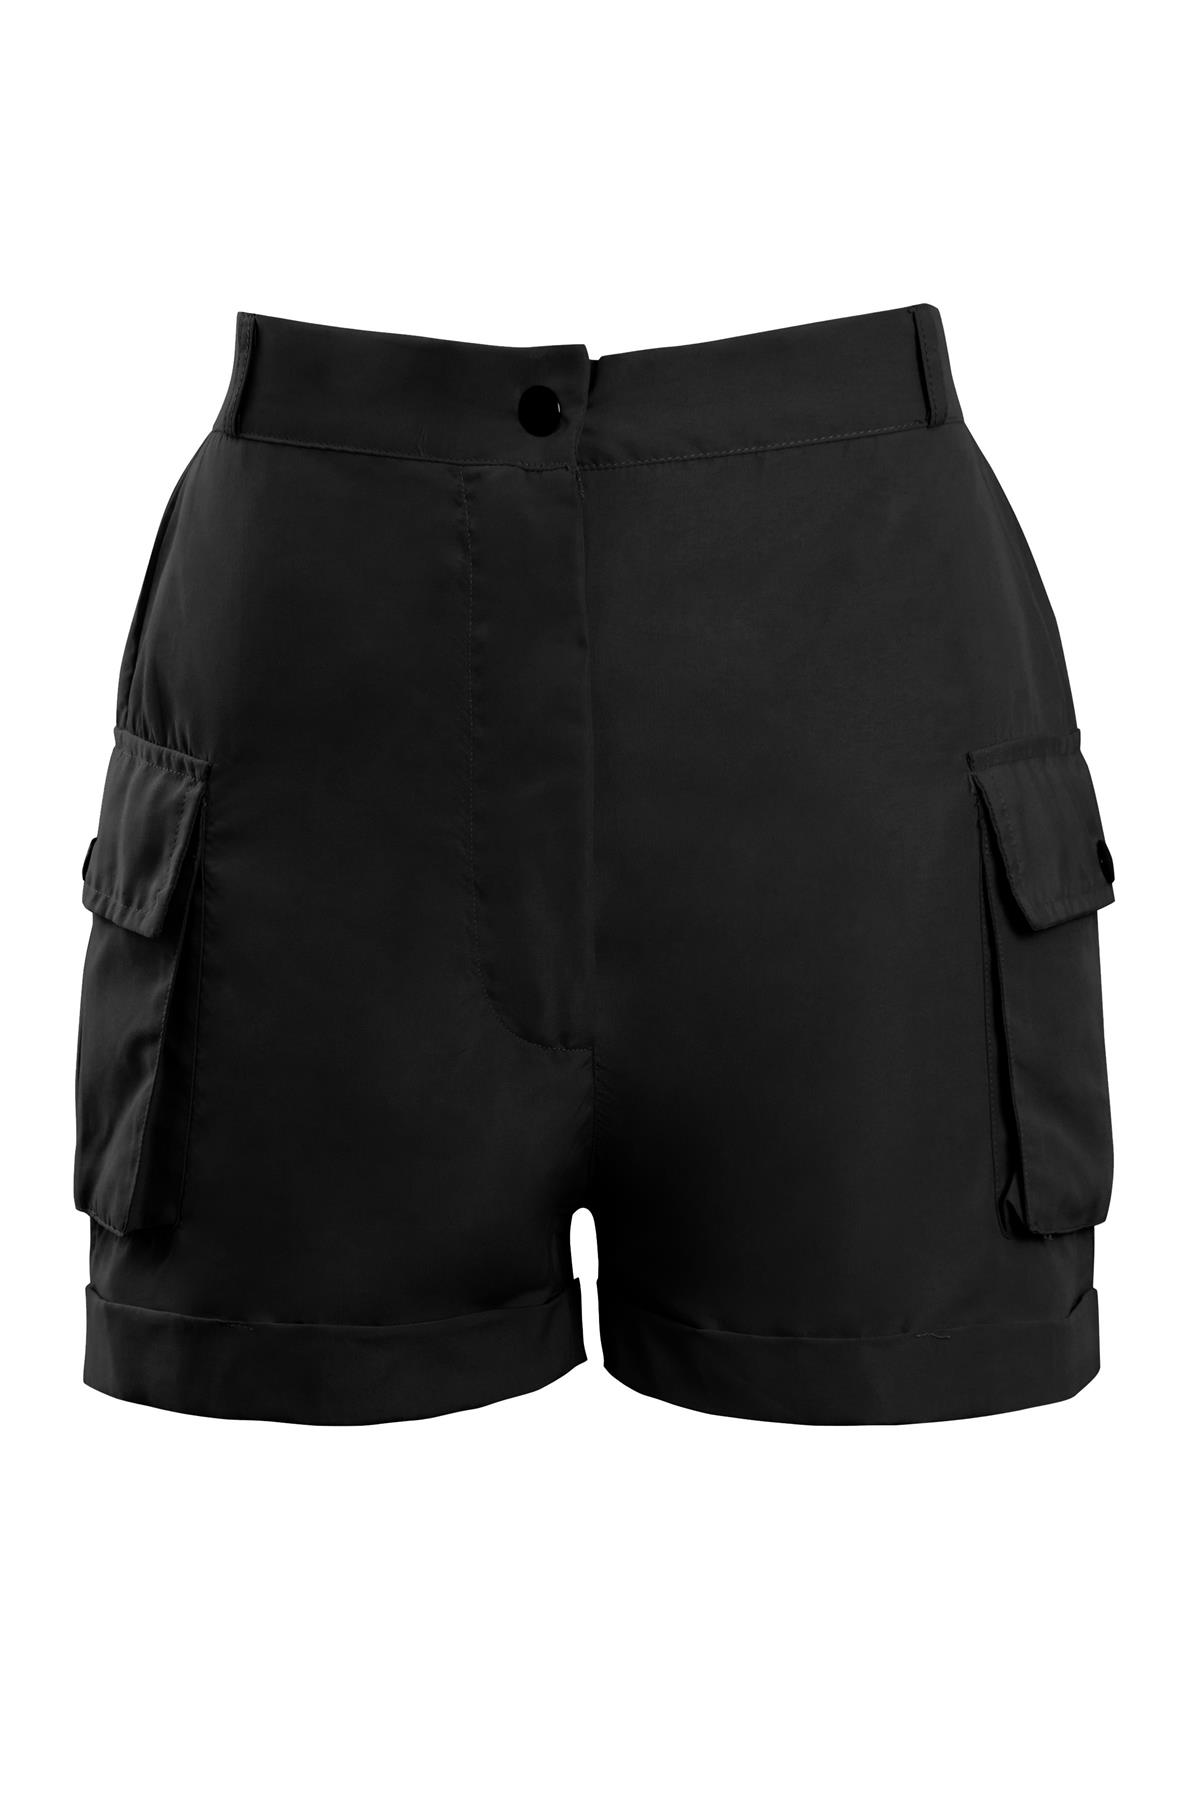 Shelikes-Womens-Cargo-Crop-Top-Shorts-Co-ord-Festival-Tie-Front-Pocket-Set thumbnail 6